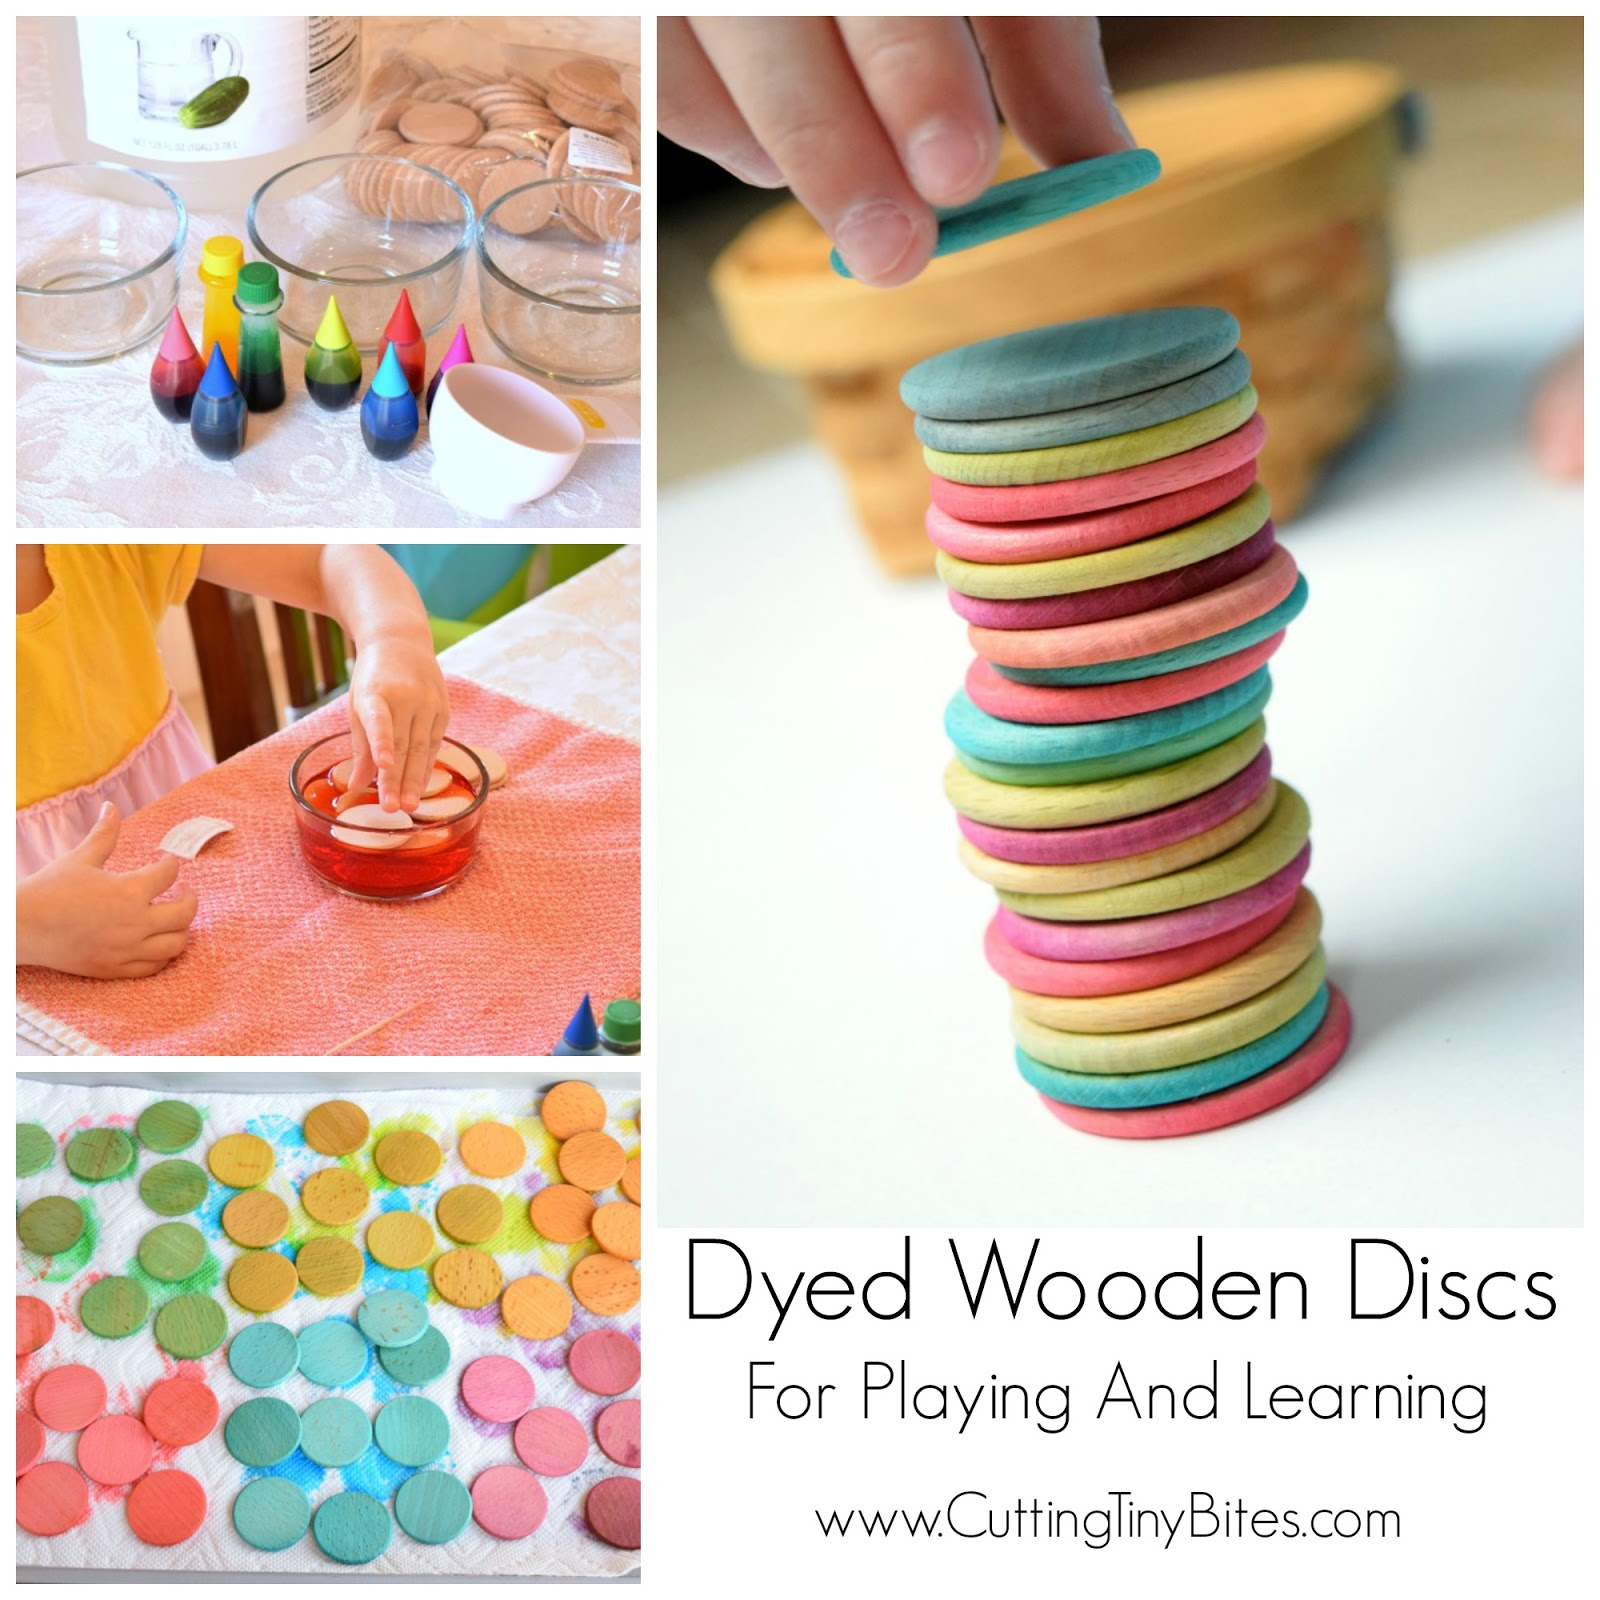 Dyed Wooden Discs For Playing and Learning